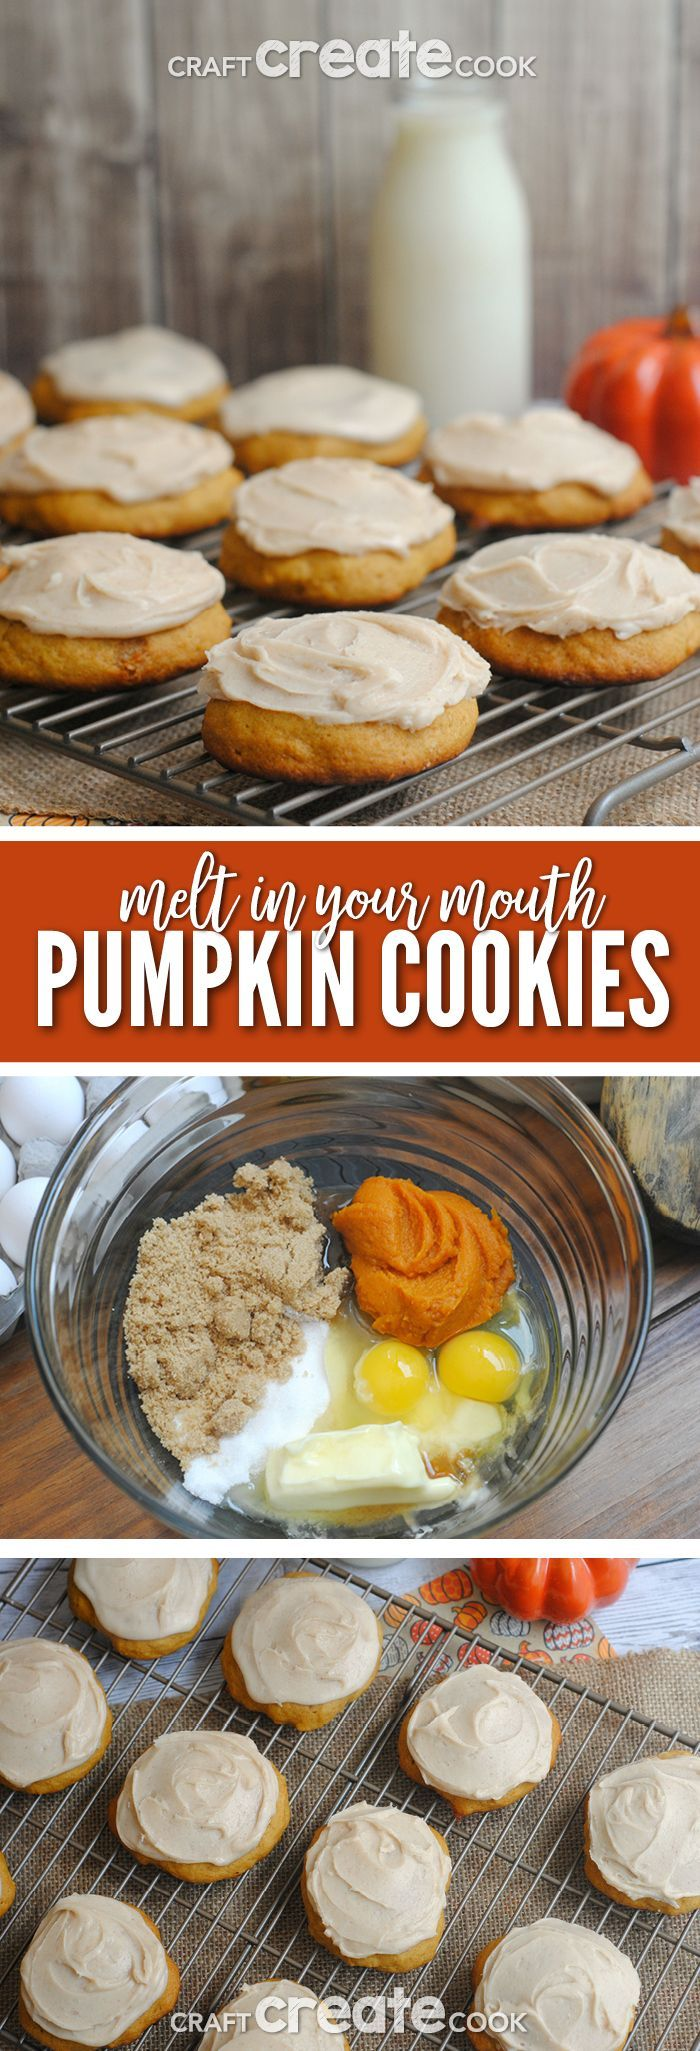 If you love pumpkin, you have to make our ultimate melt in your mouth pumpkin cookies! #pumpkinrecipes via @CraftCreatCook1